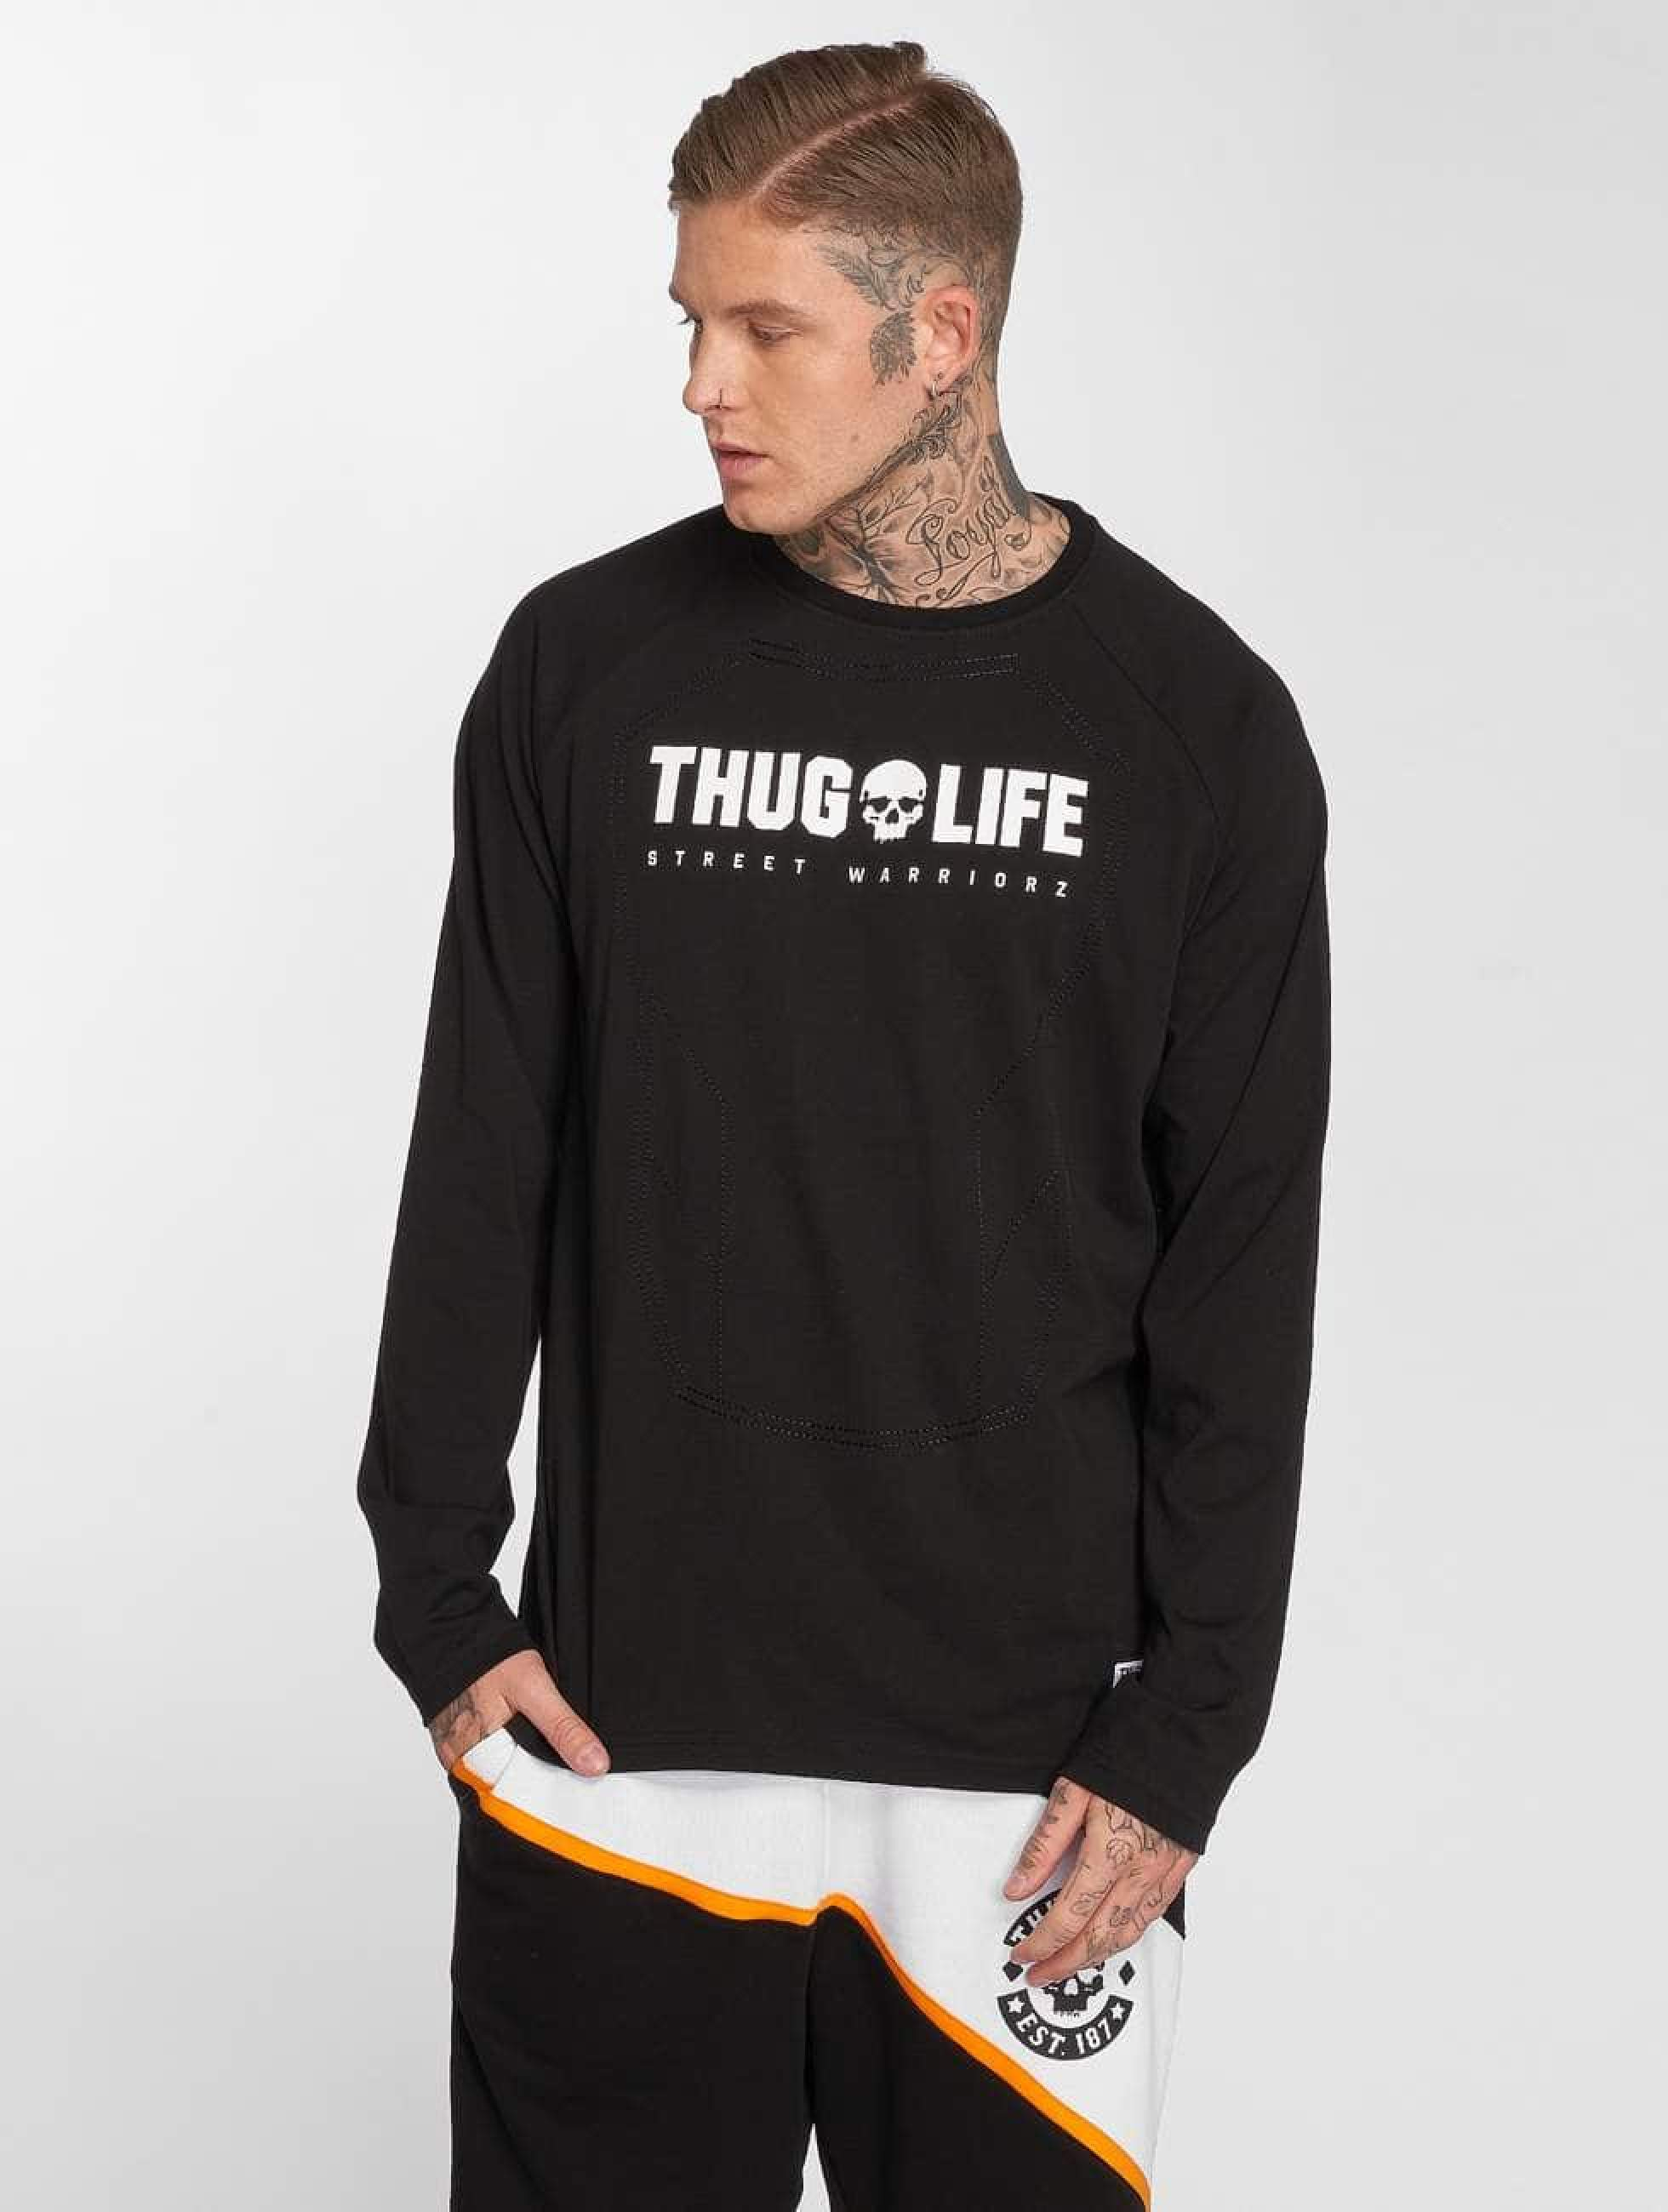 Thug Life / Longsleeve Future in black 2XL